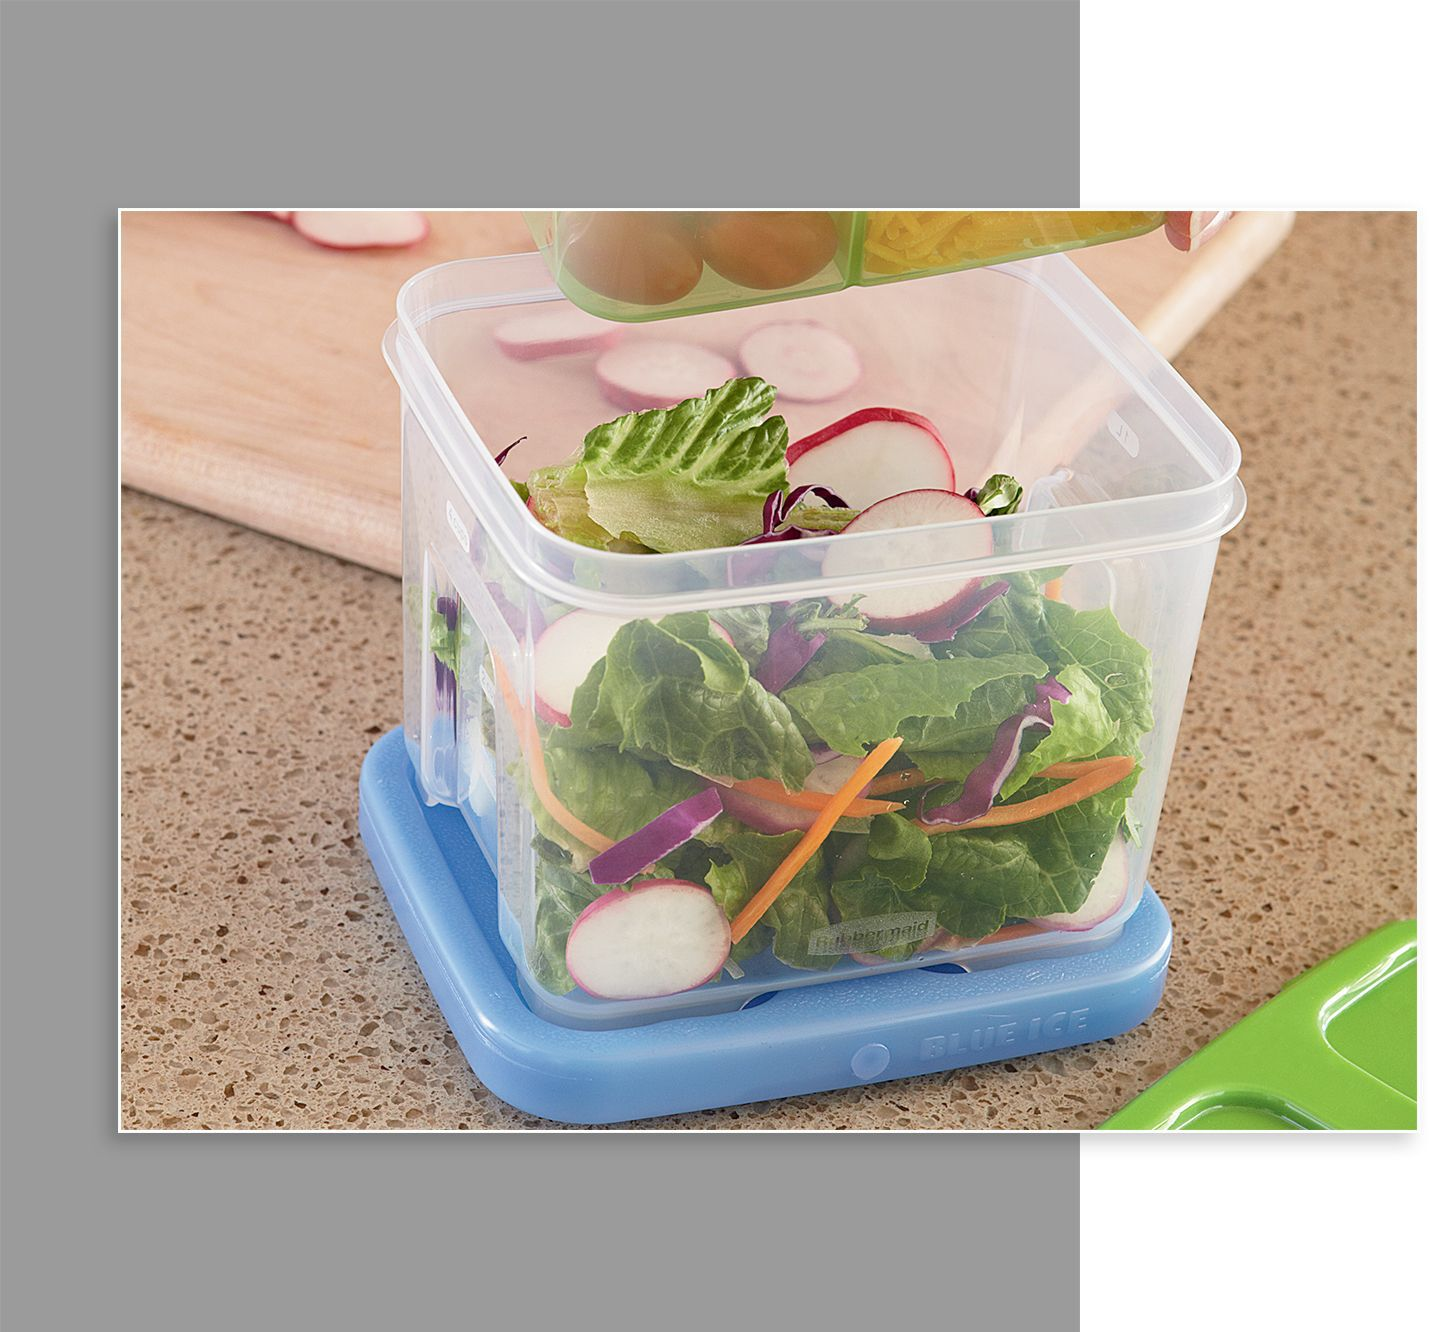 Rubbermaid LunchBlox food storage containers